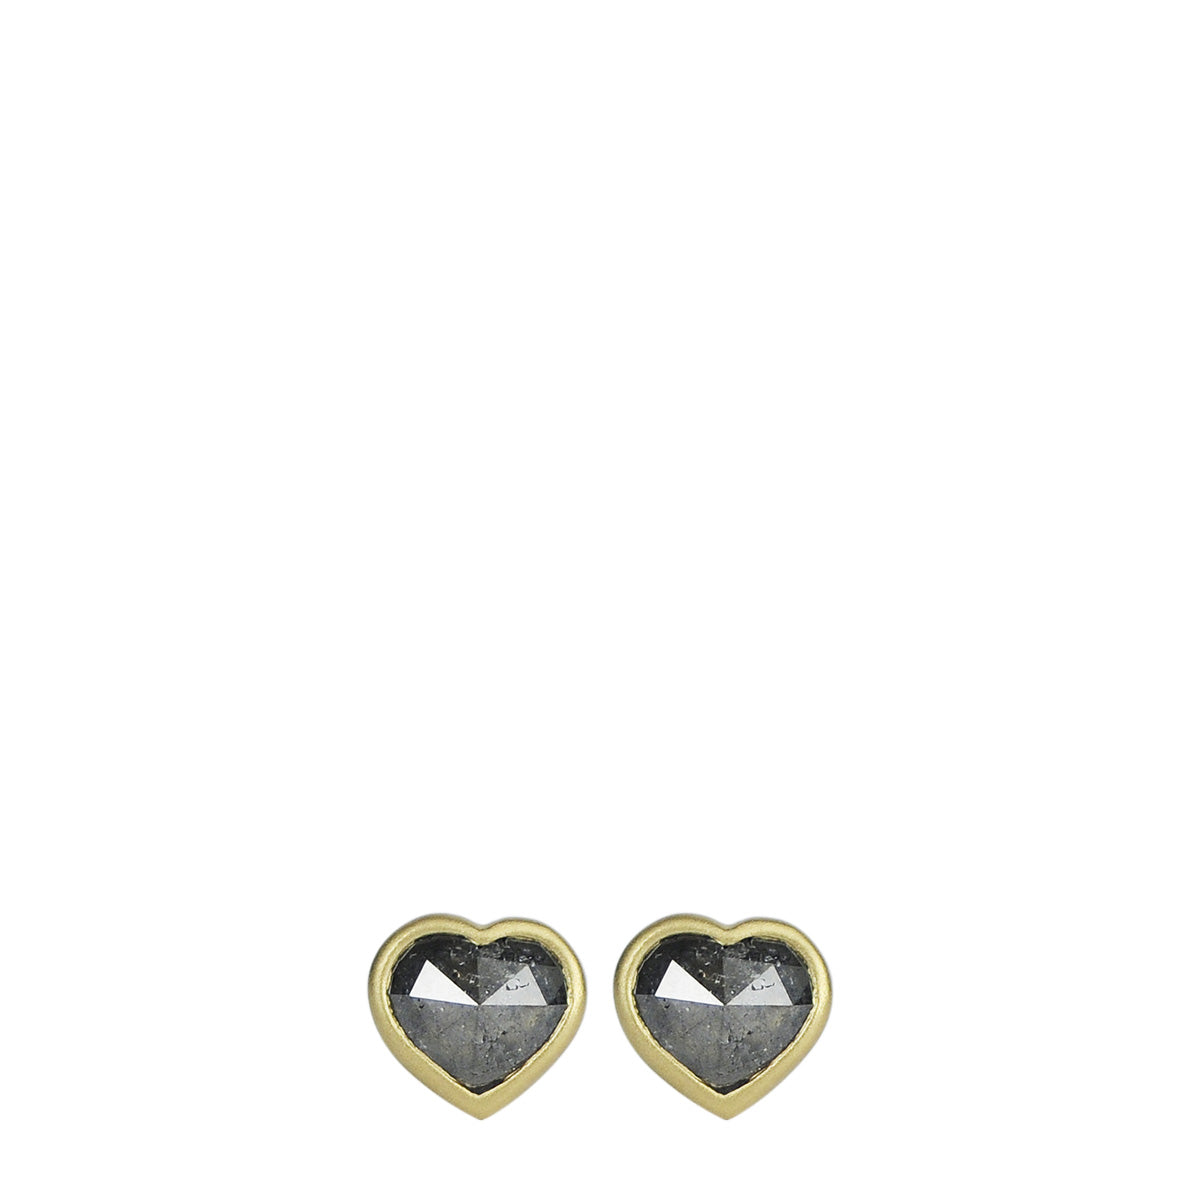 18K Gold Grey Diamond Heart Stud Earrings